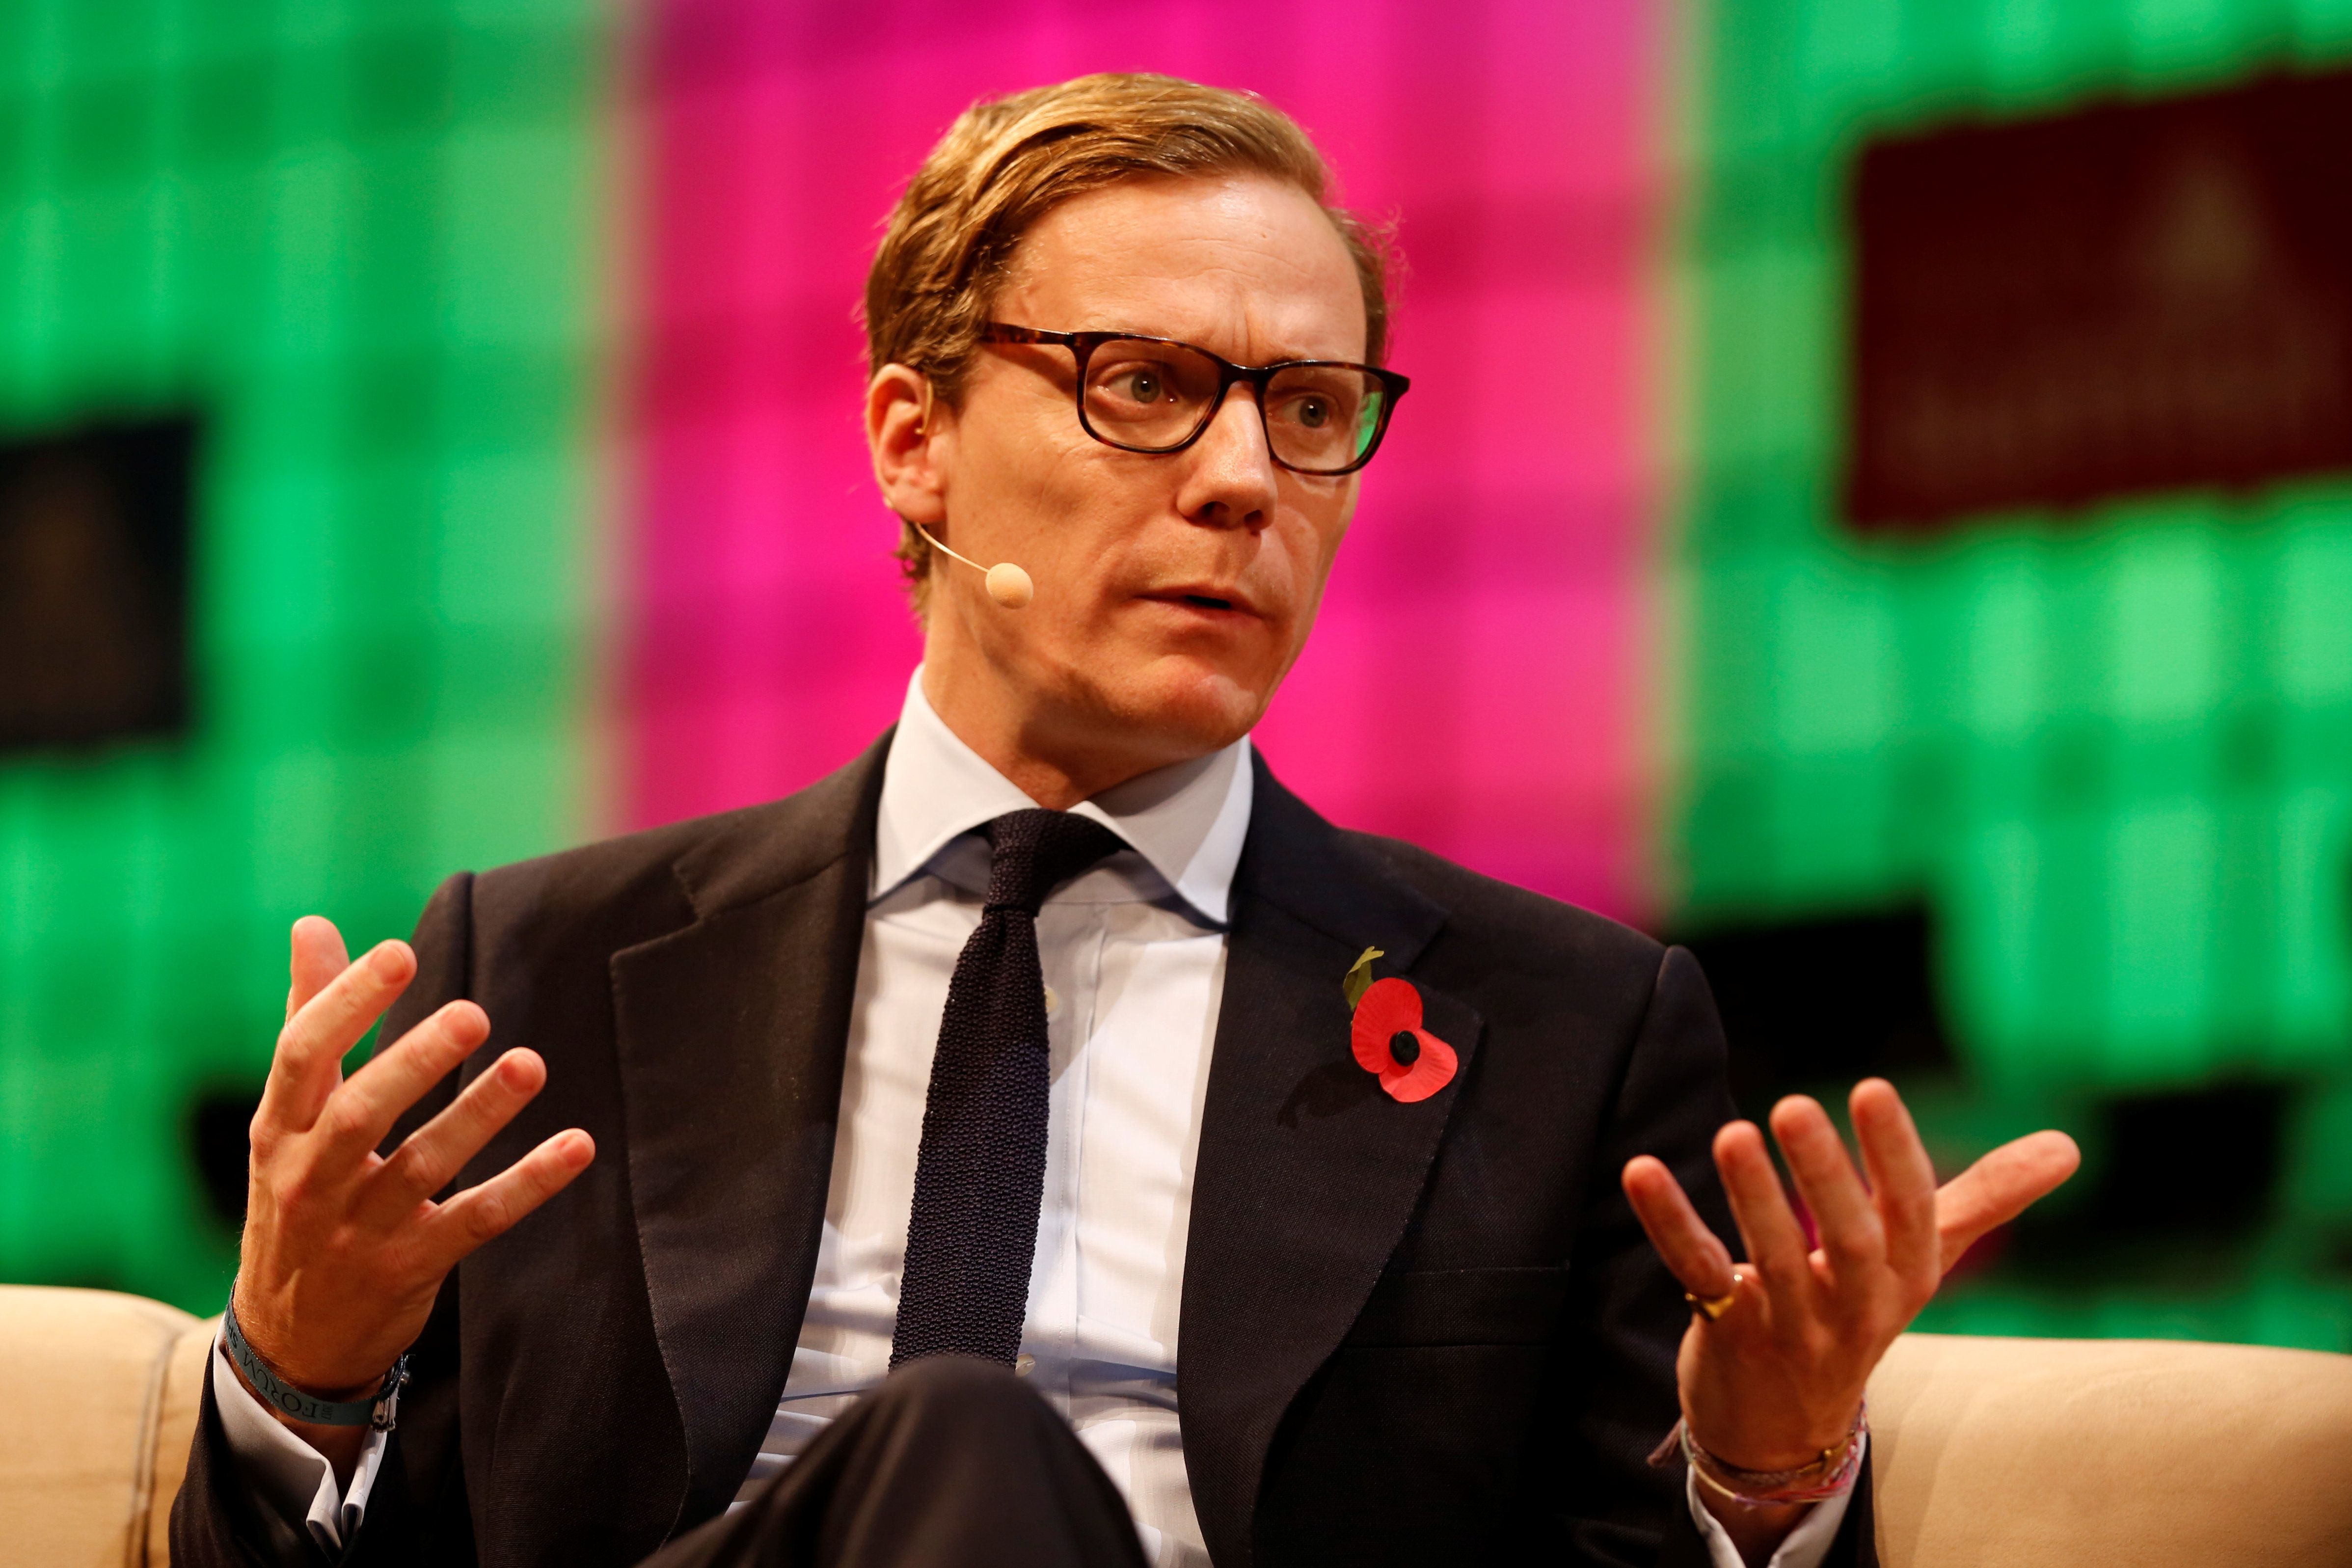 Explained: What Is Cambridge Analytica – And What Is It Accused Of Doing?